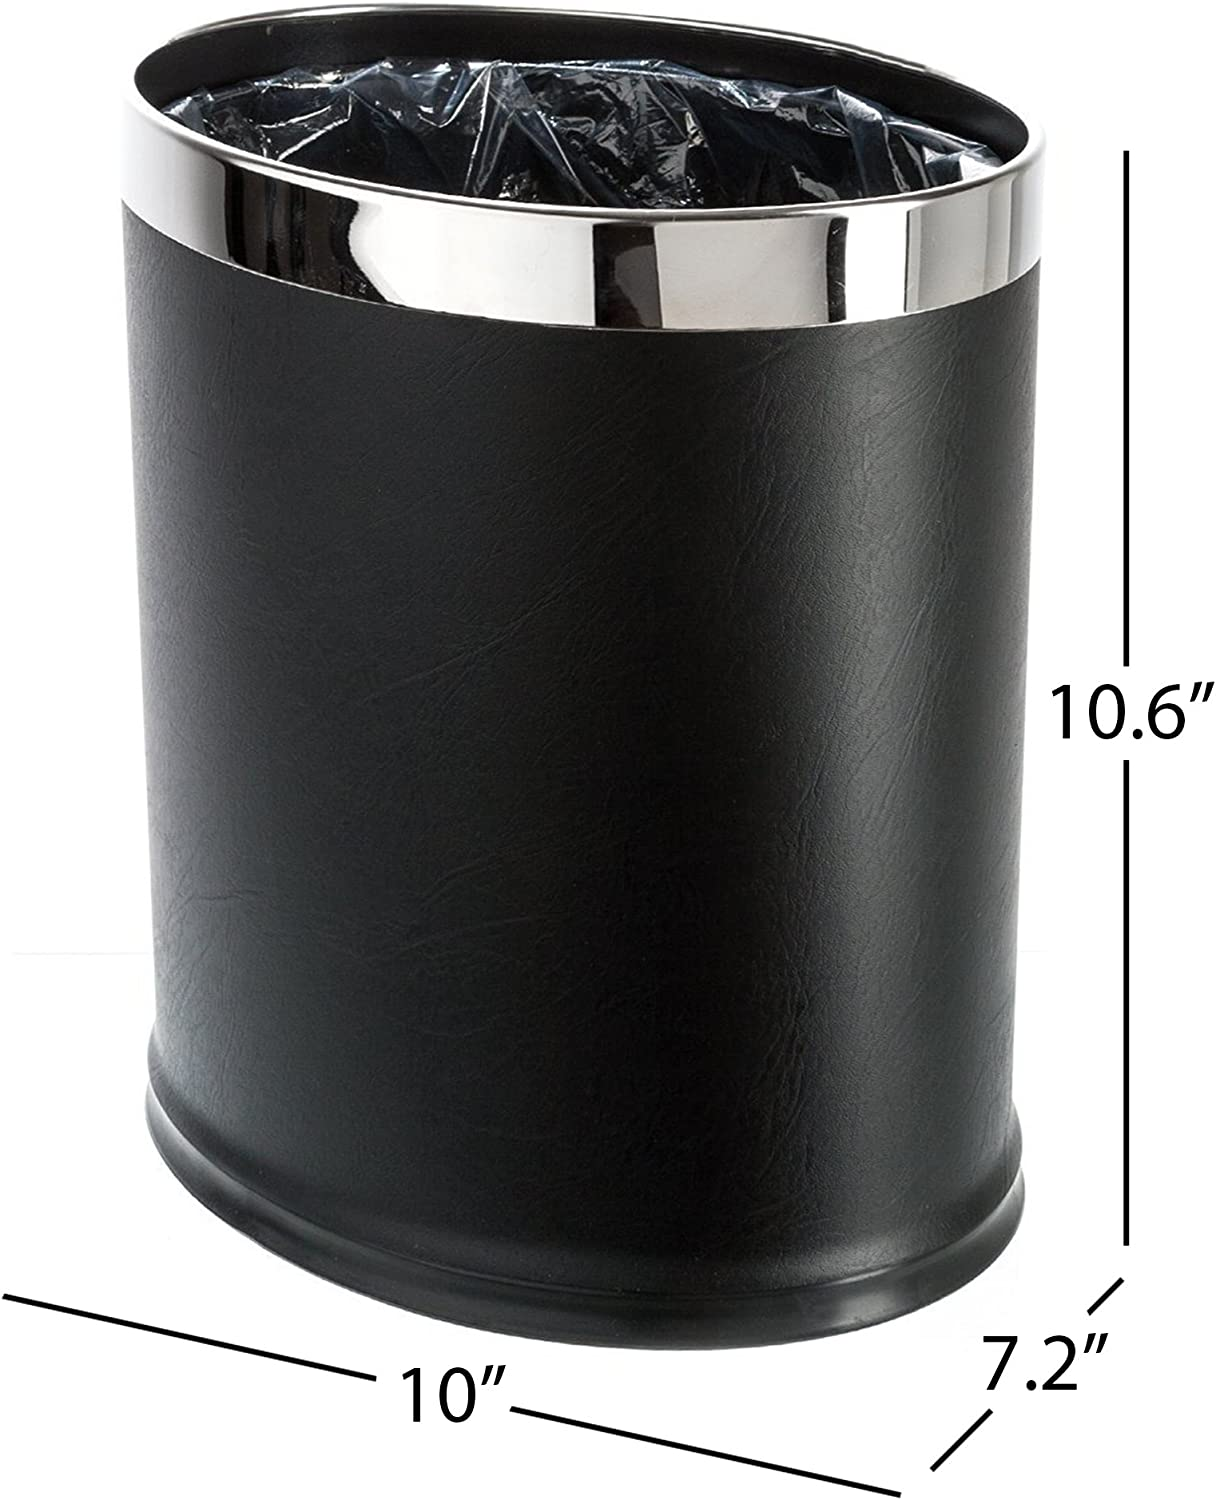 Brelso 'Invisi-Overlap' Open Top Leatherette Trash Can, Small Office Wastebasket, Modern Home Décor, Oval Shape (Black)